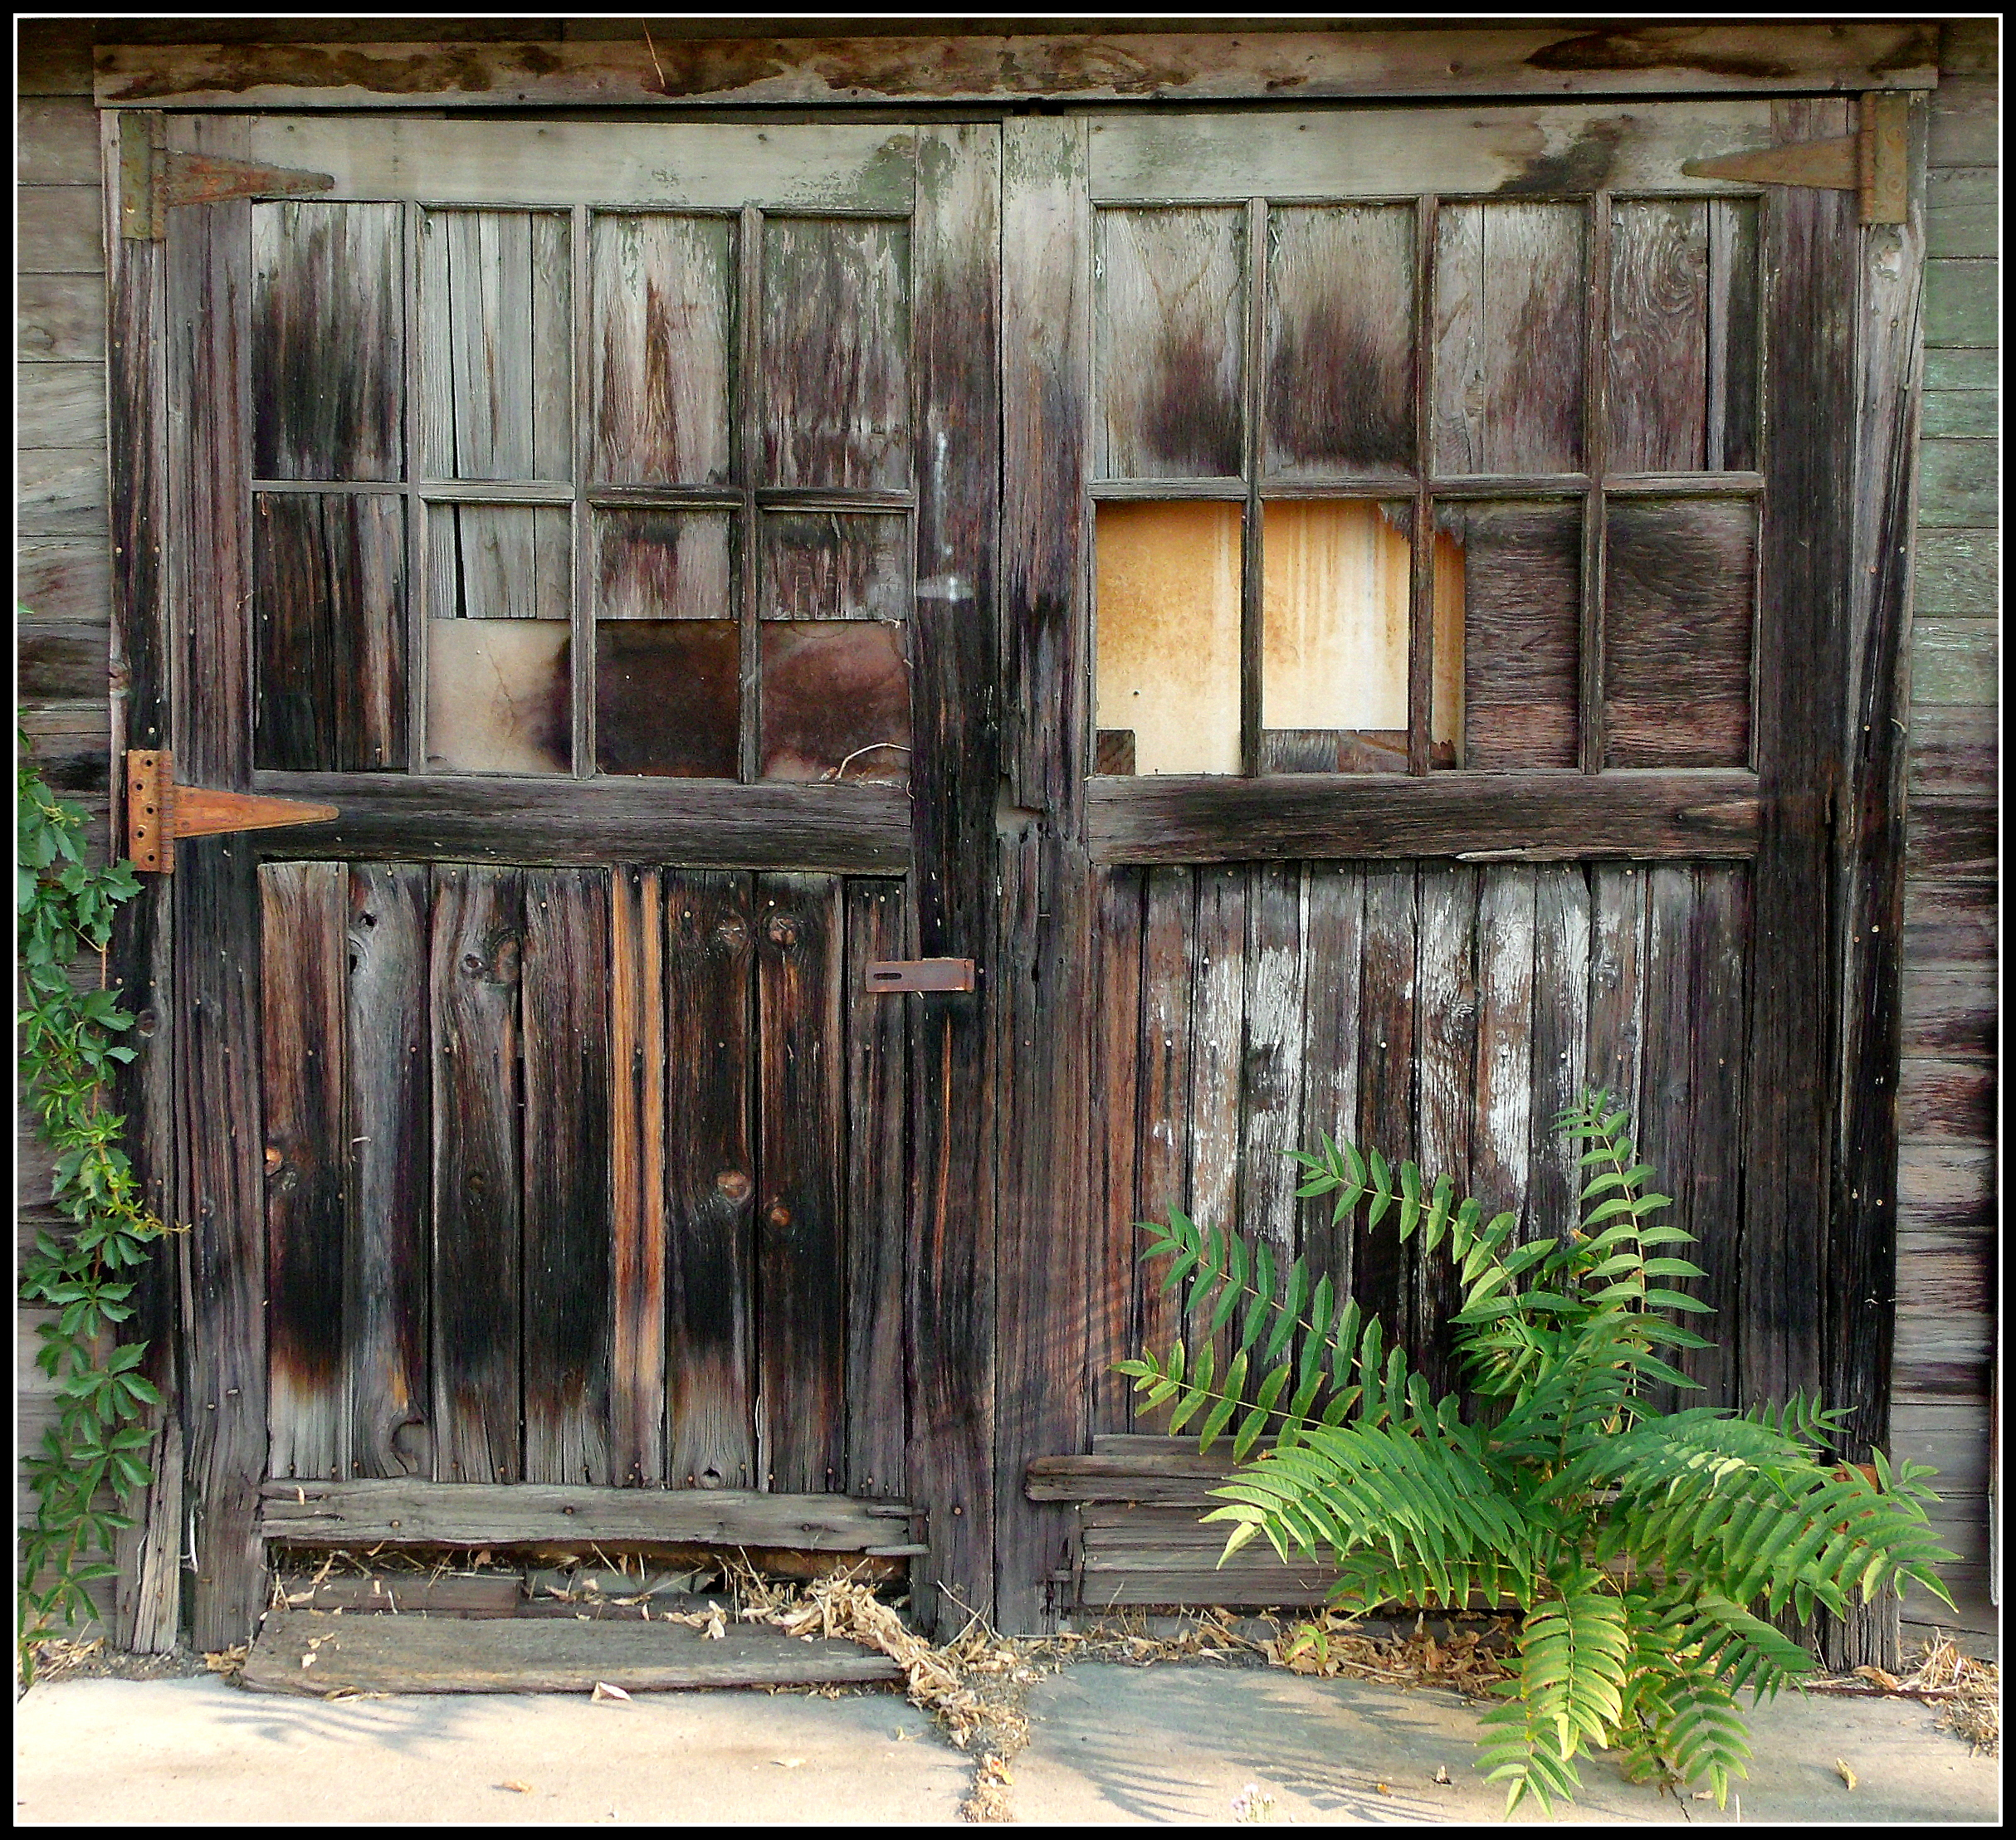 Old wooden door scott 39 s place images and words for Wood doors with windows